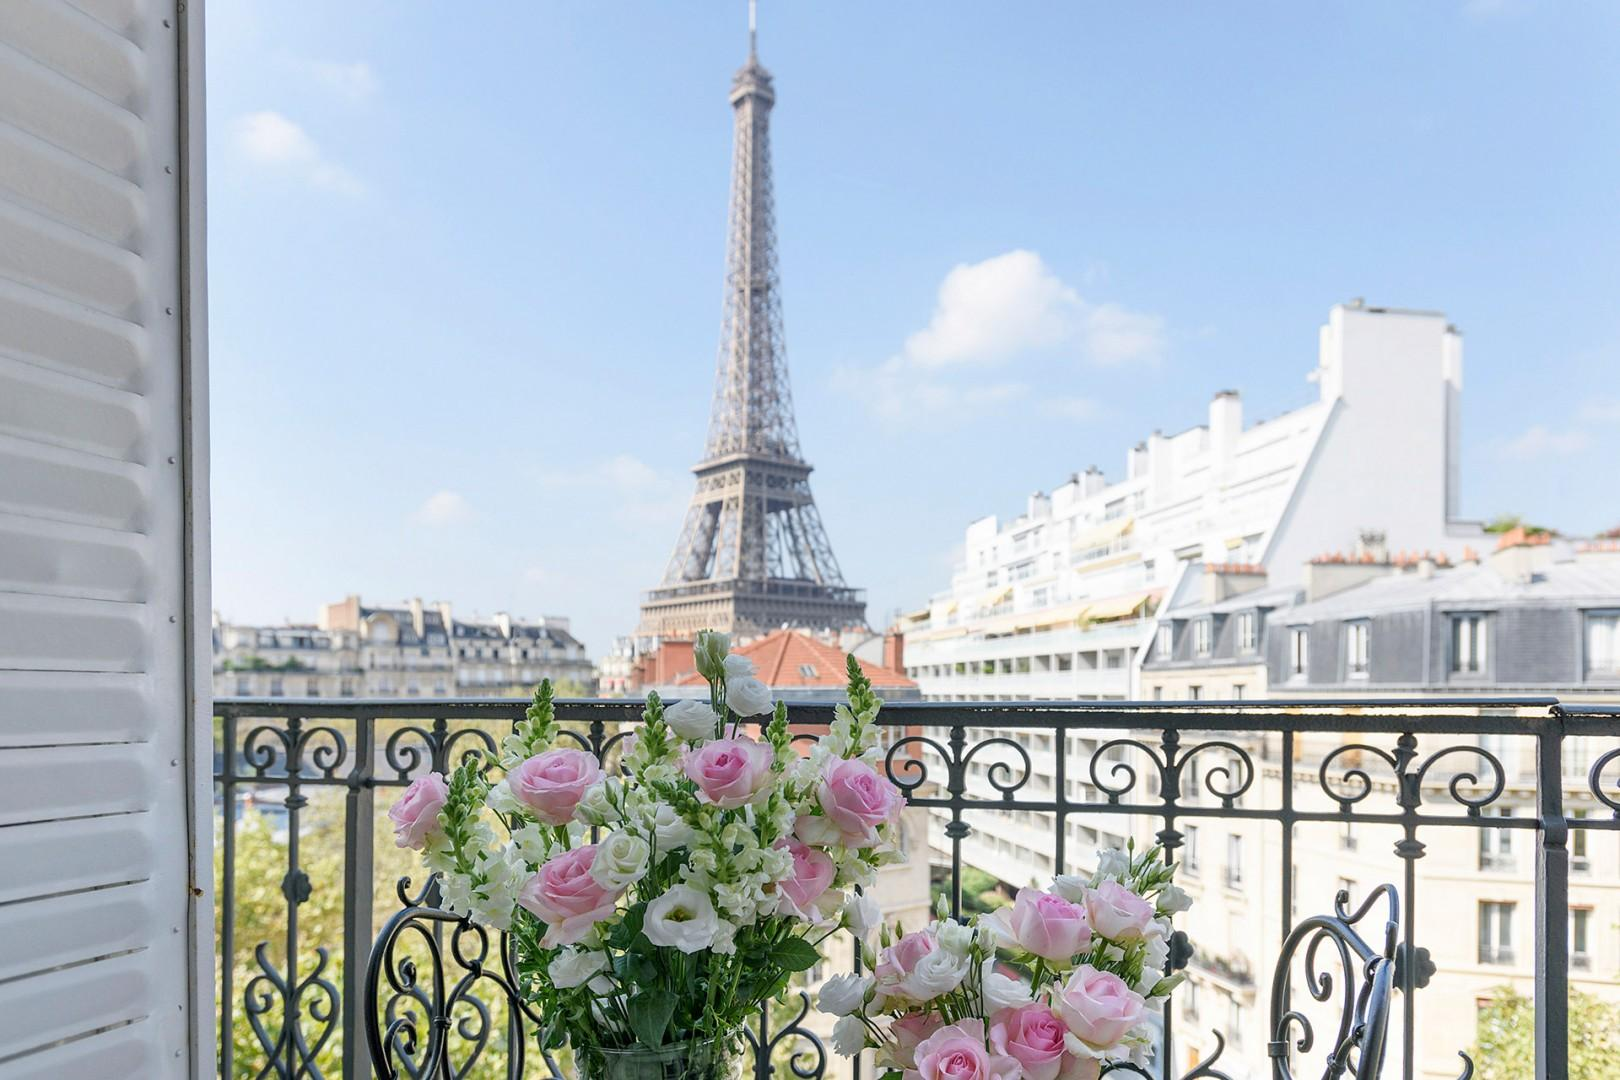 Enjoy your direct view of the Eiffel Tower.